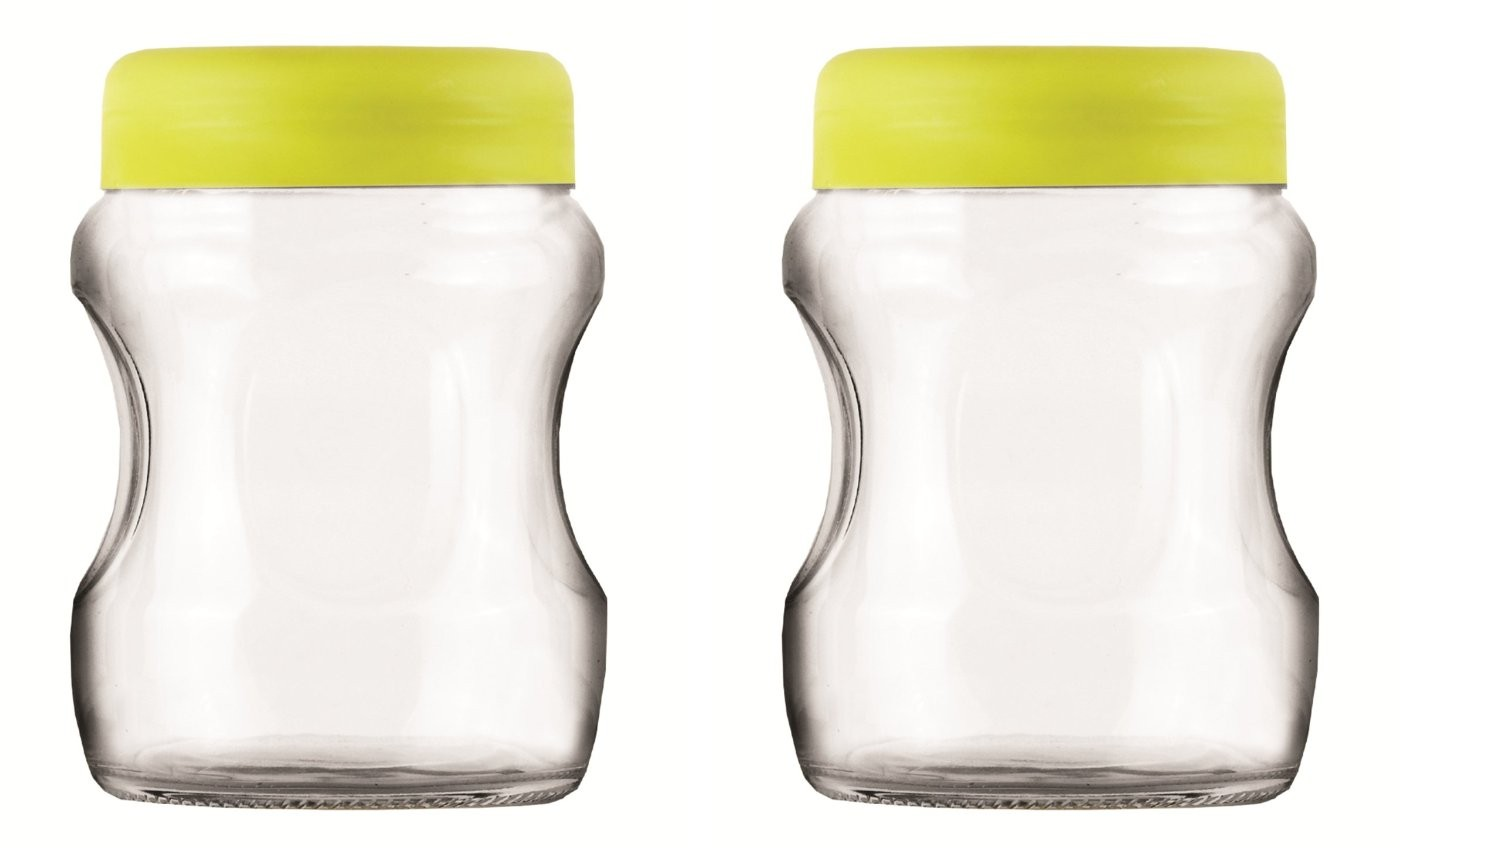 Roxx Curvy Jar Set, 500ml, Set of 2, Green